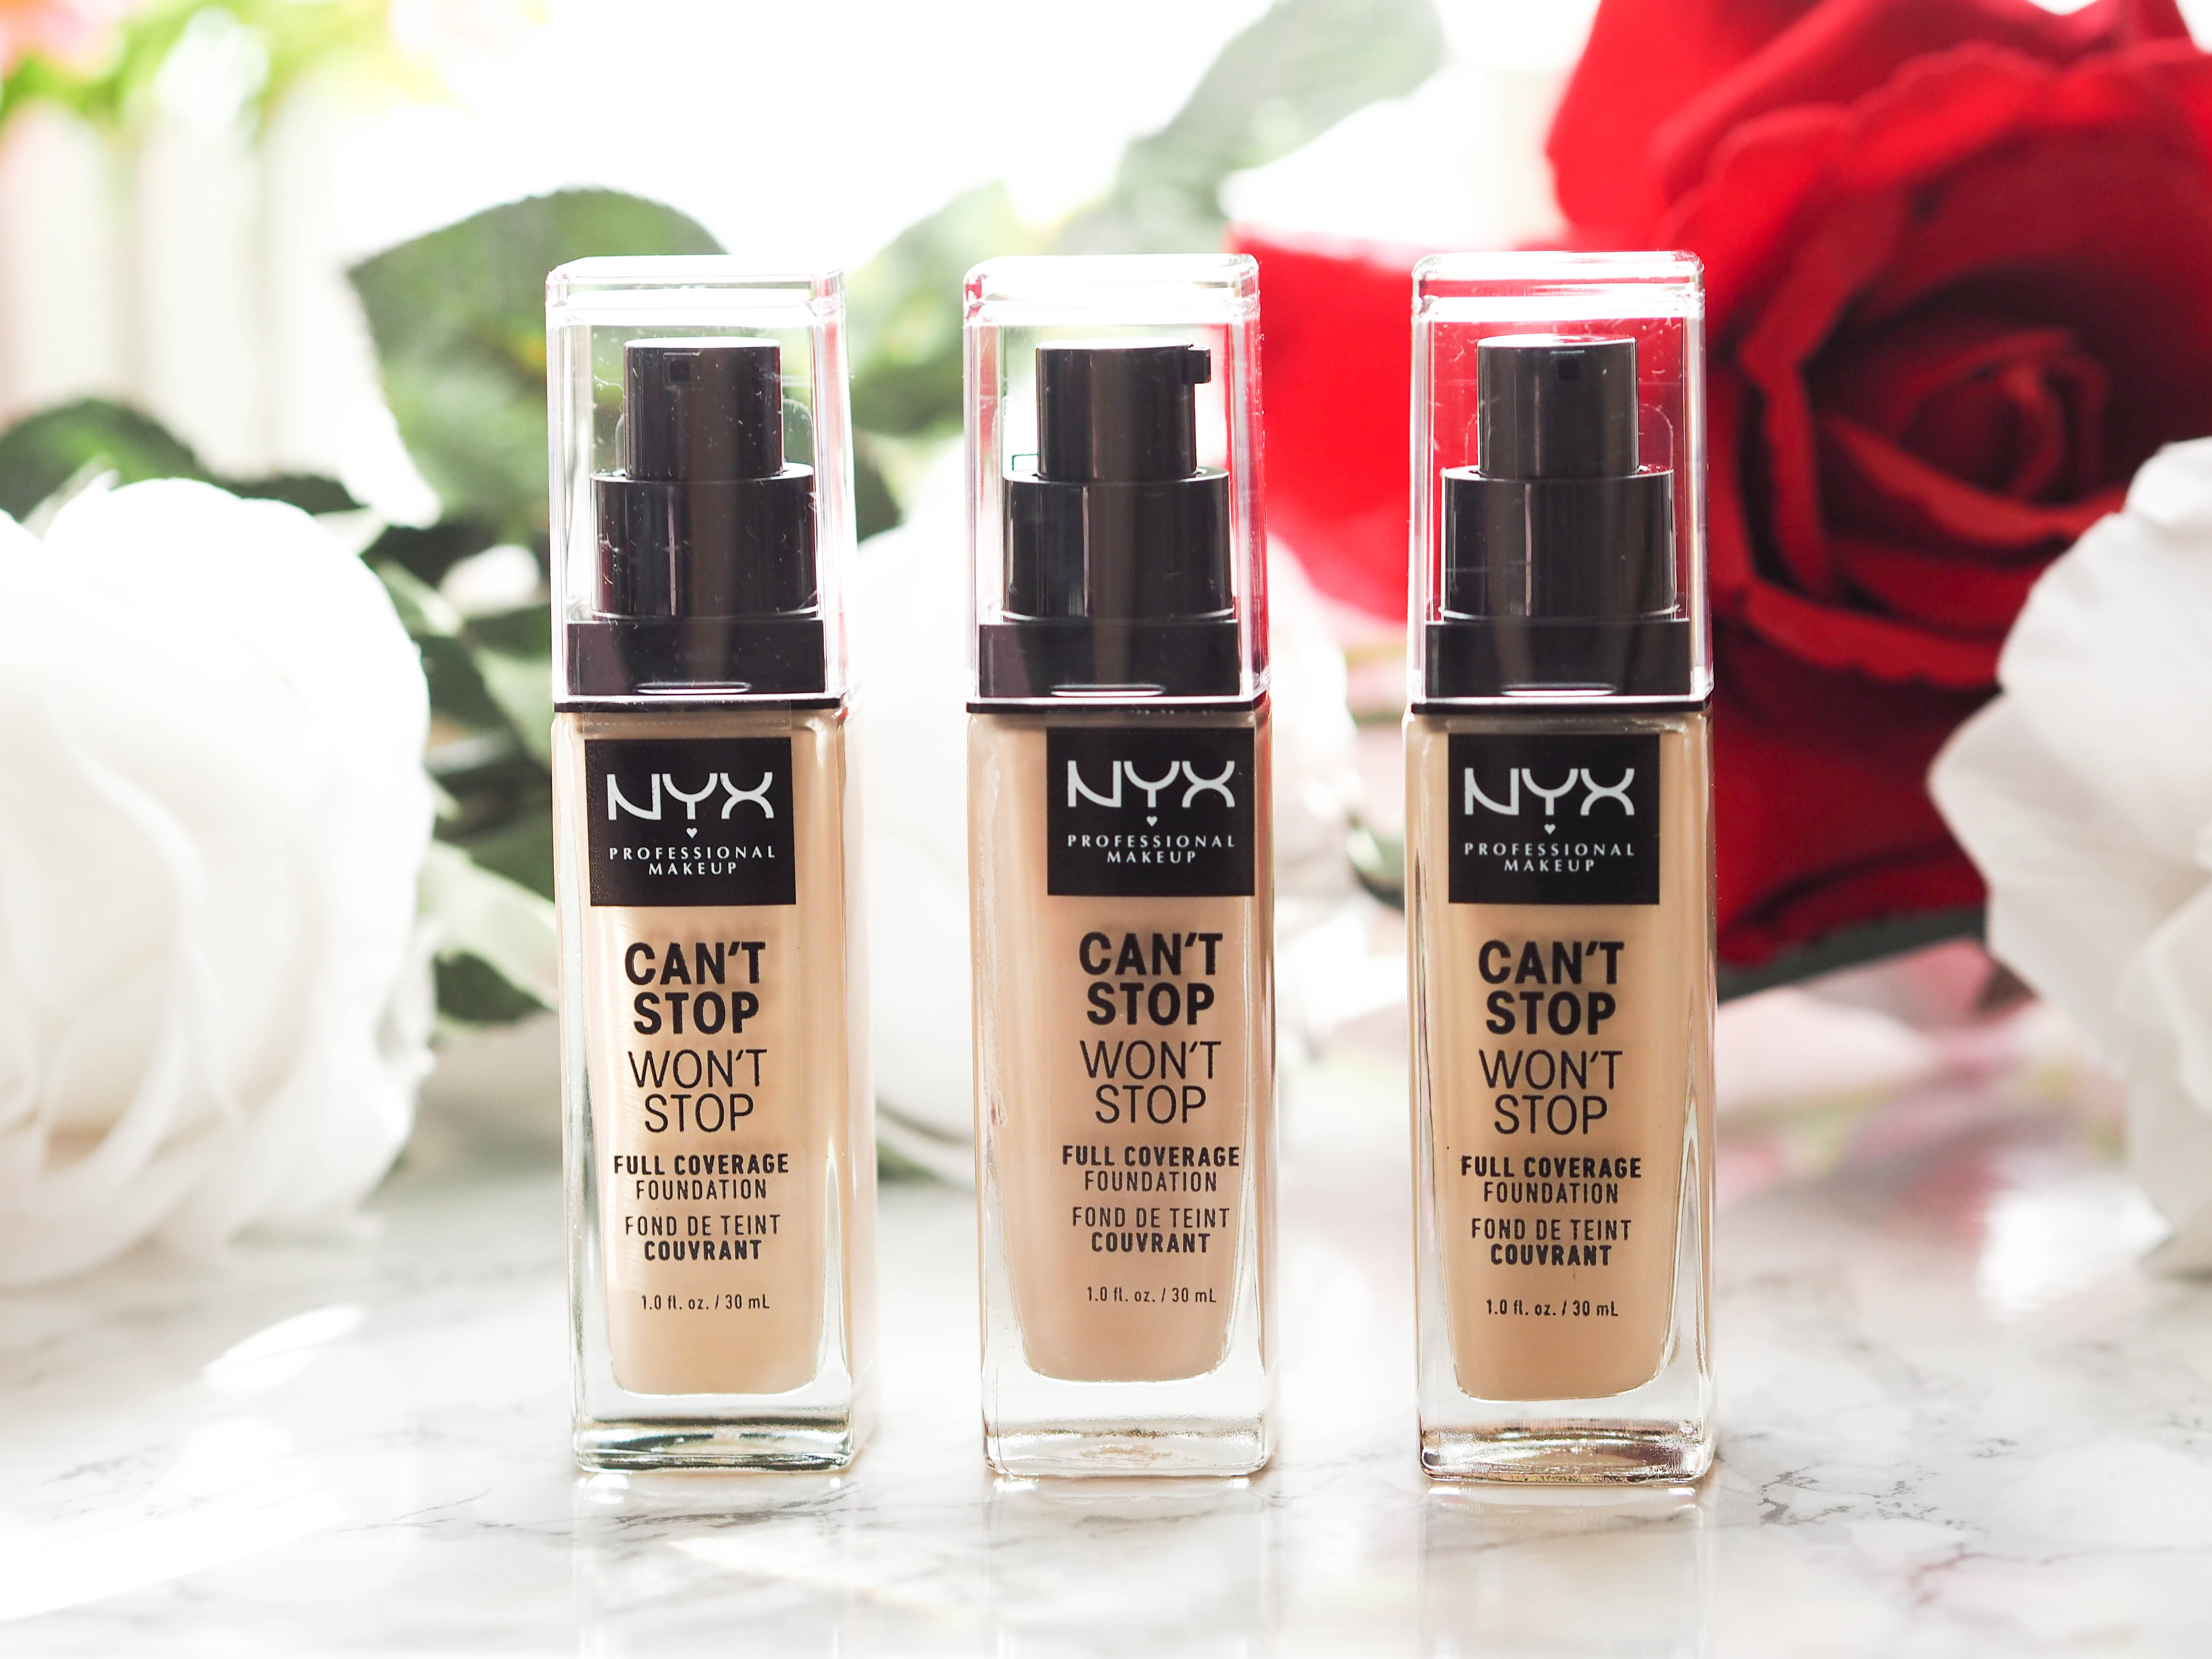 NYX Professional Makeup Can't Stop, Won't Stop Full Coverage Foundation